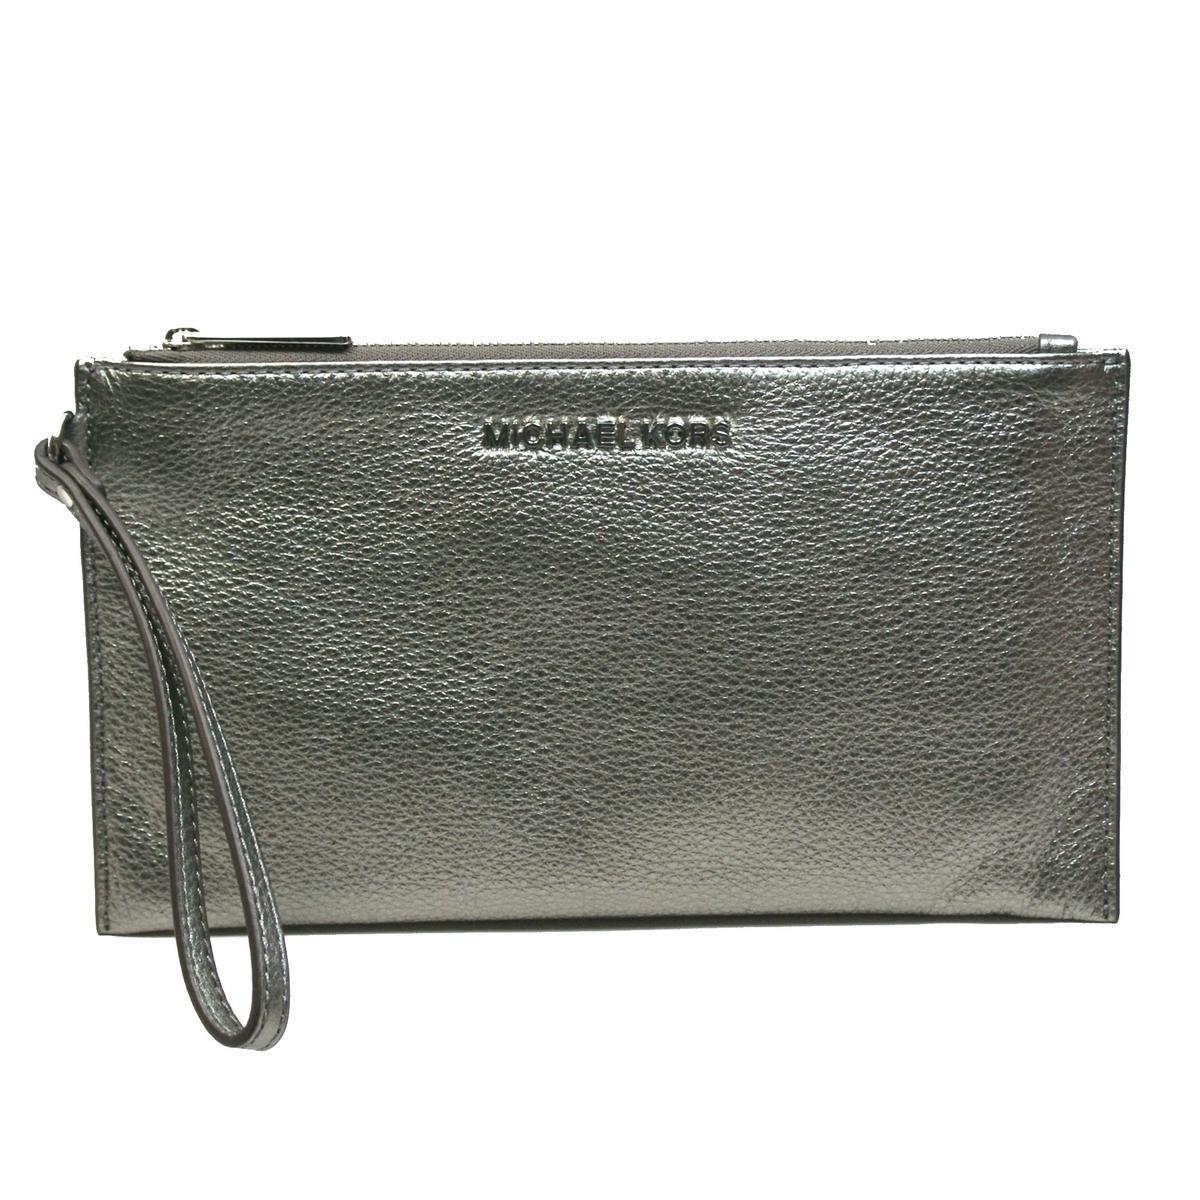 059c675acc5a Buy michael kors bedford large clutch > OFF64% Discounted